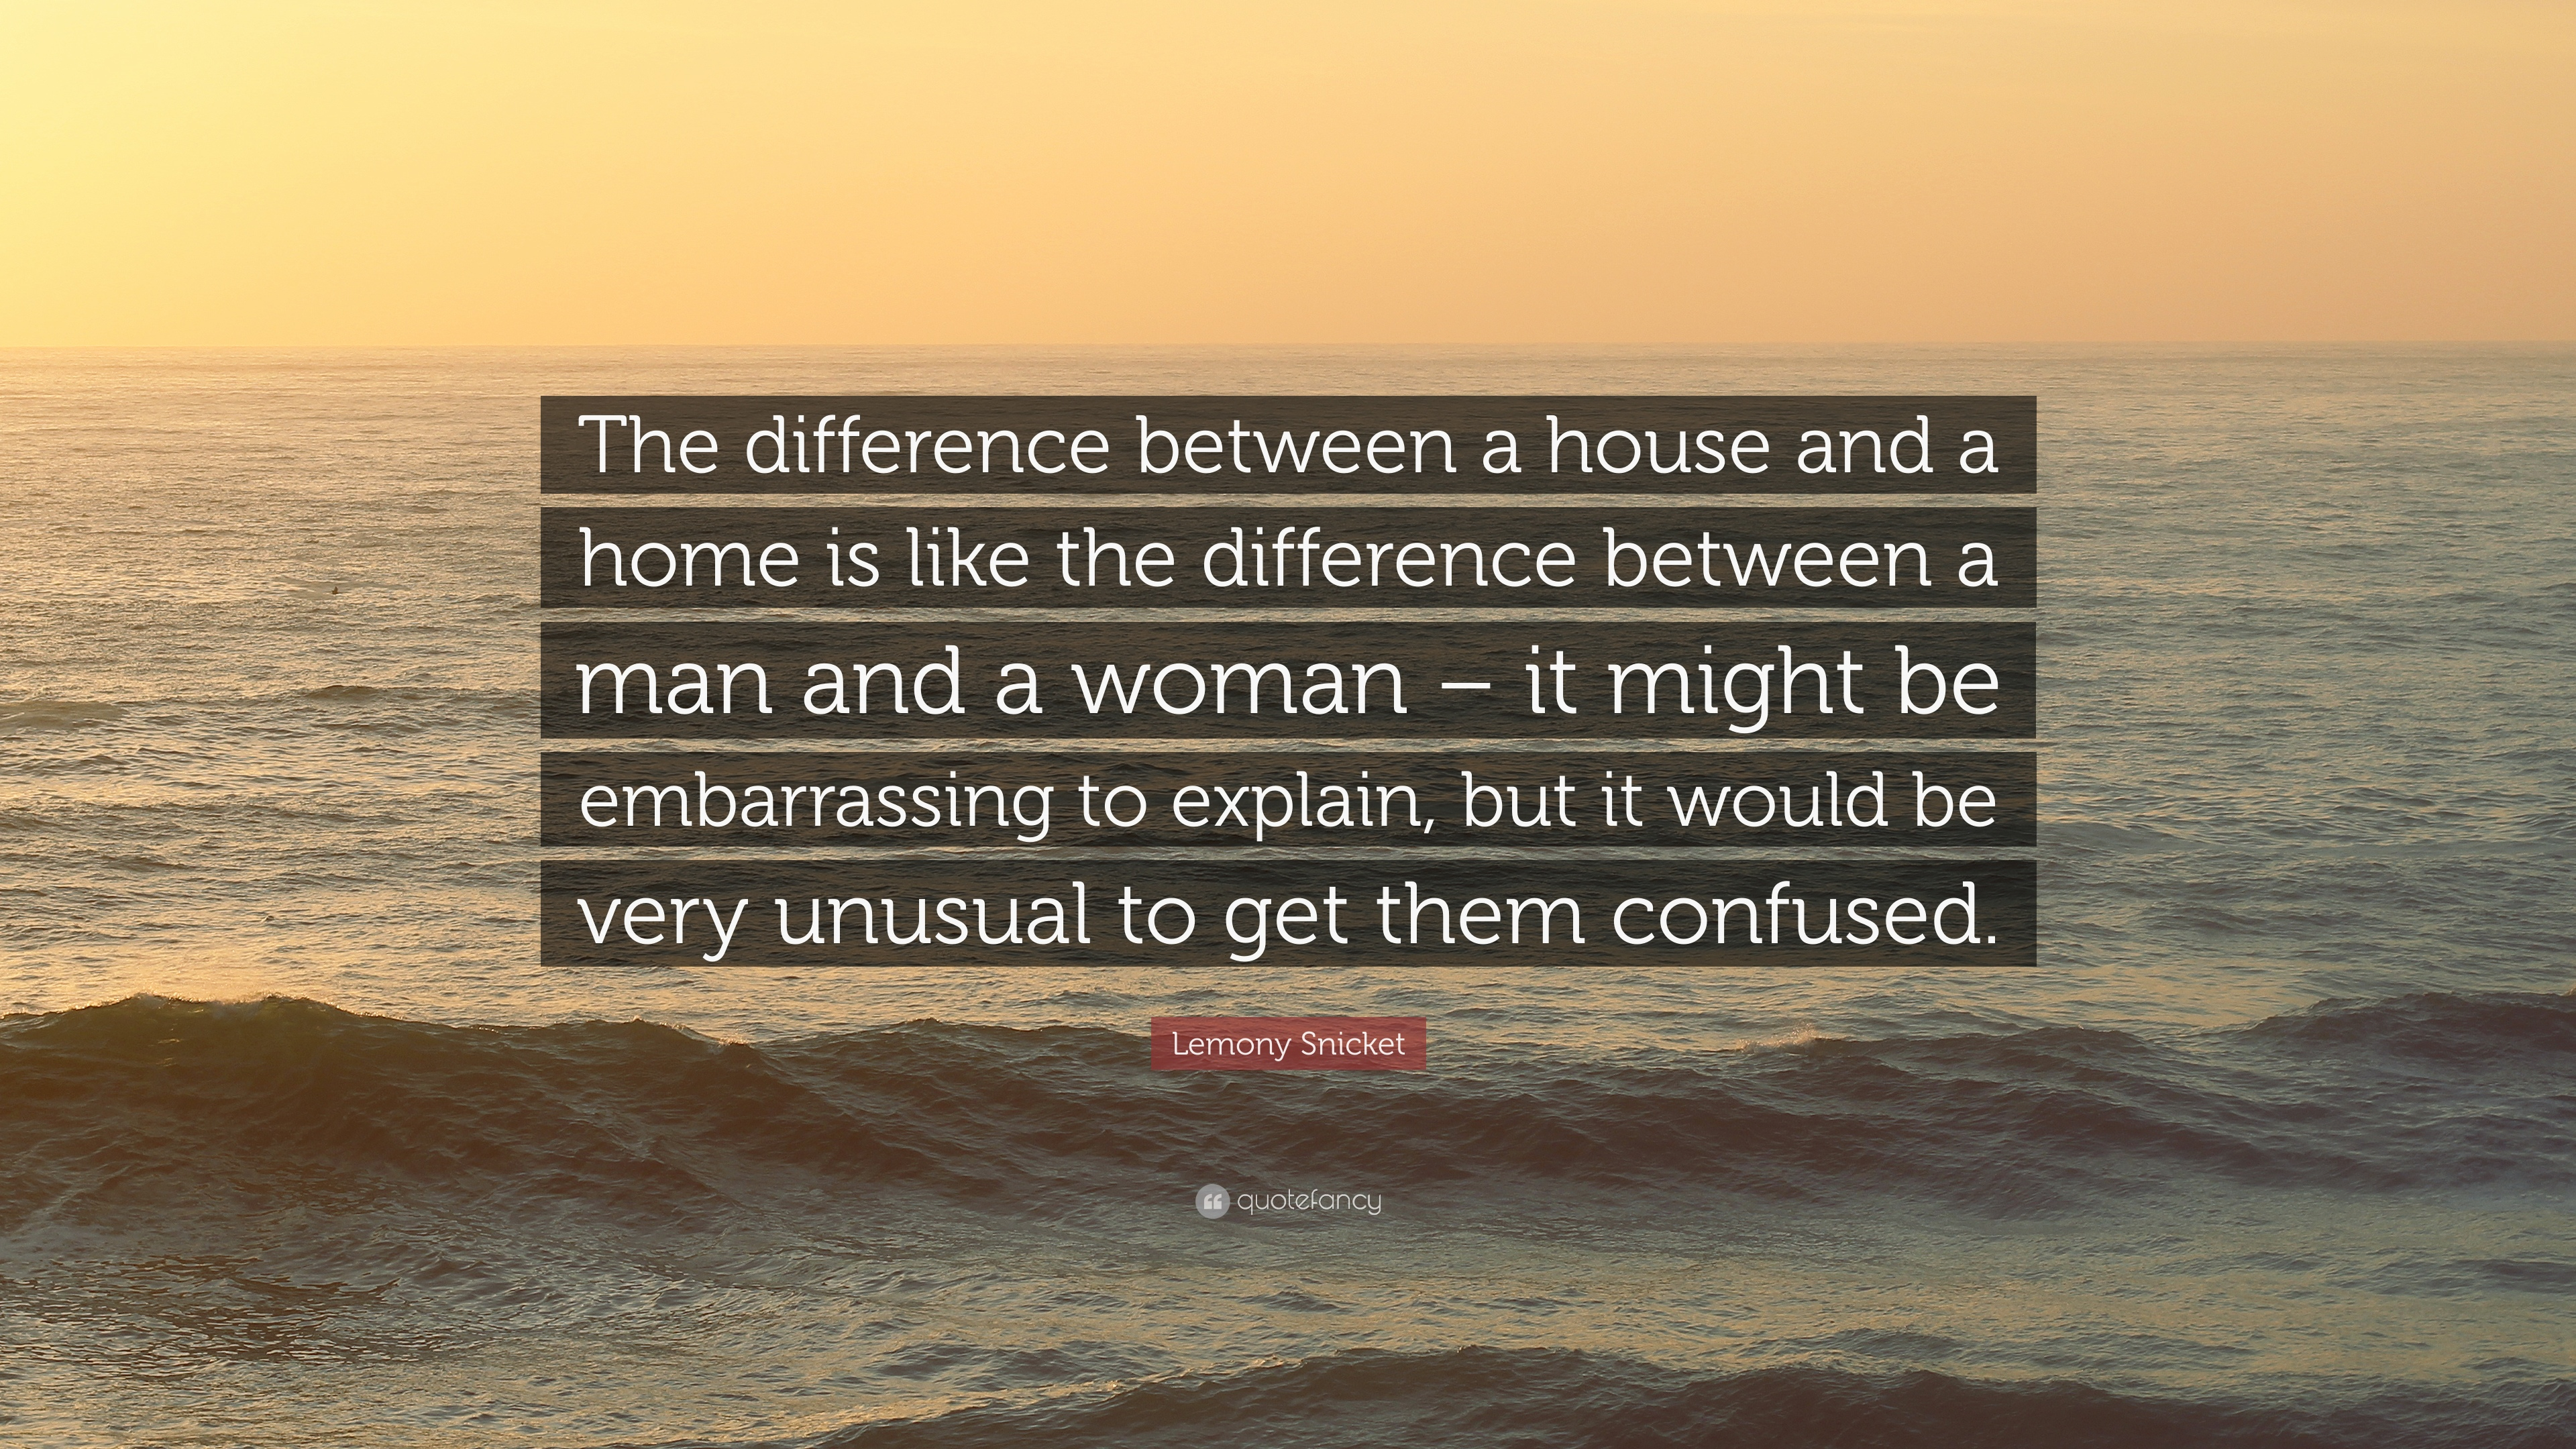 Lemony Snicket Quote The Difference Between A House And A Home Is